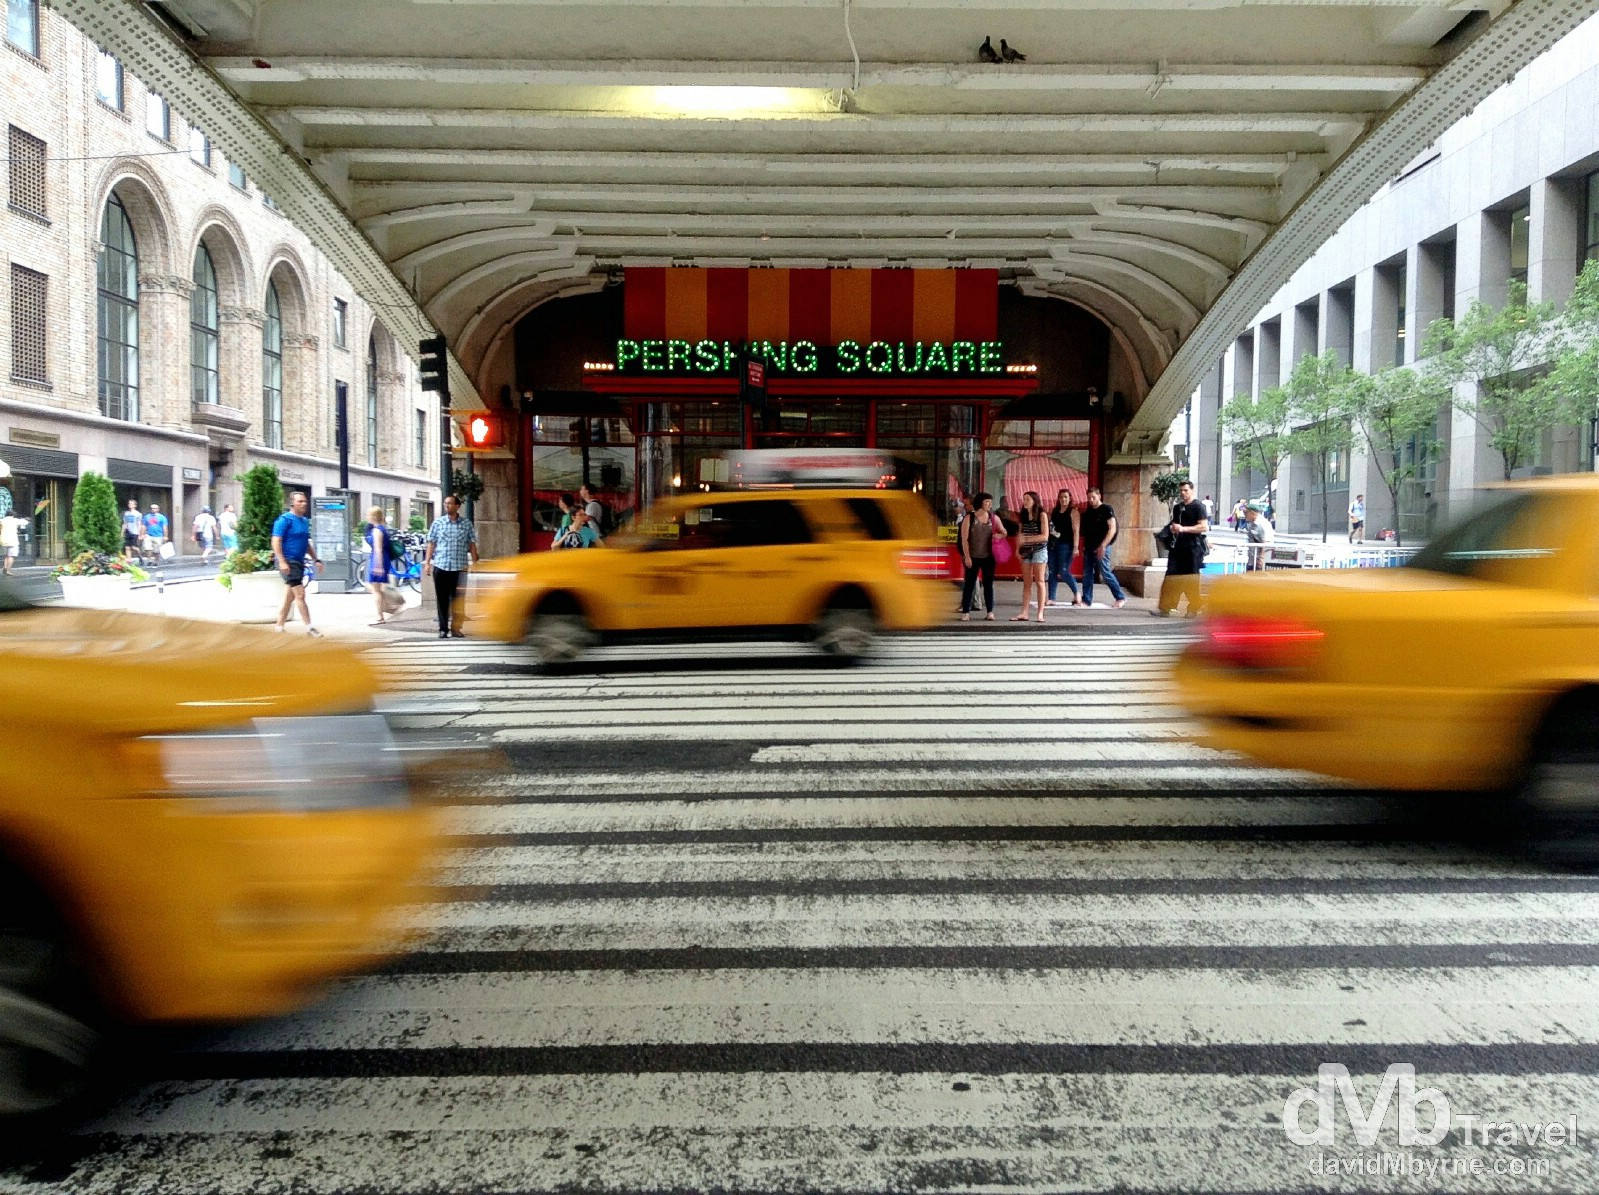 Traffic outside Grand Central Station/Terminal, New York City, USA. July 13th 2013. (iPod)